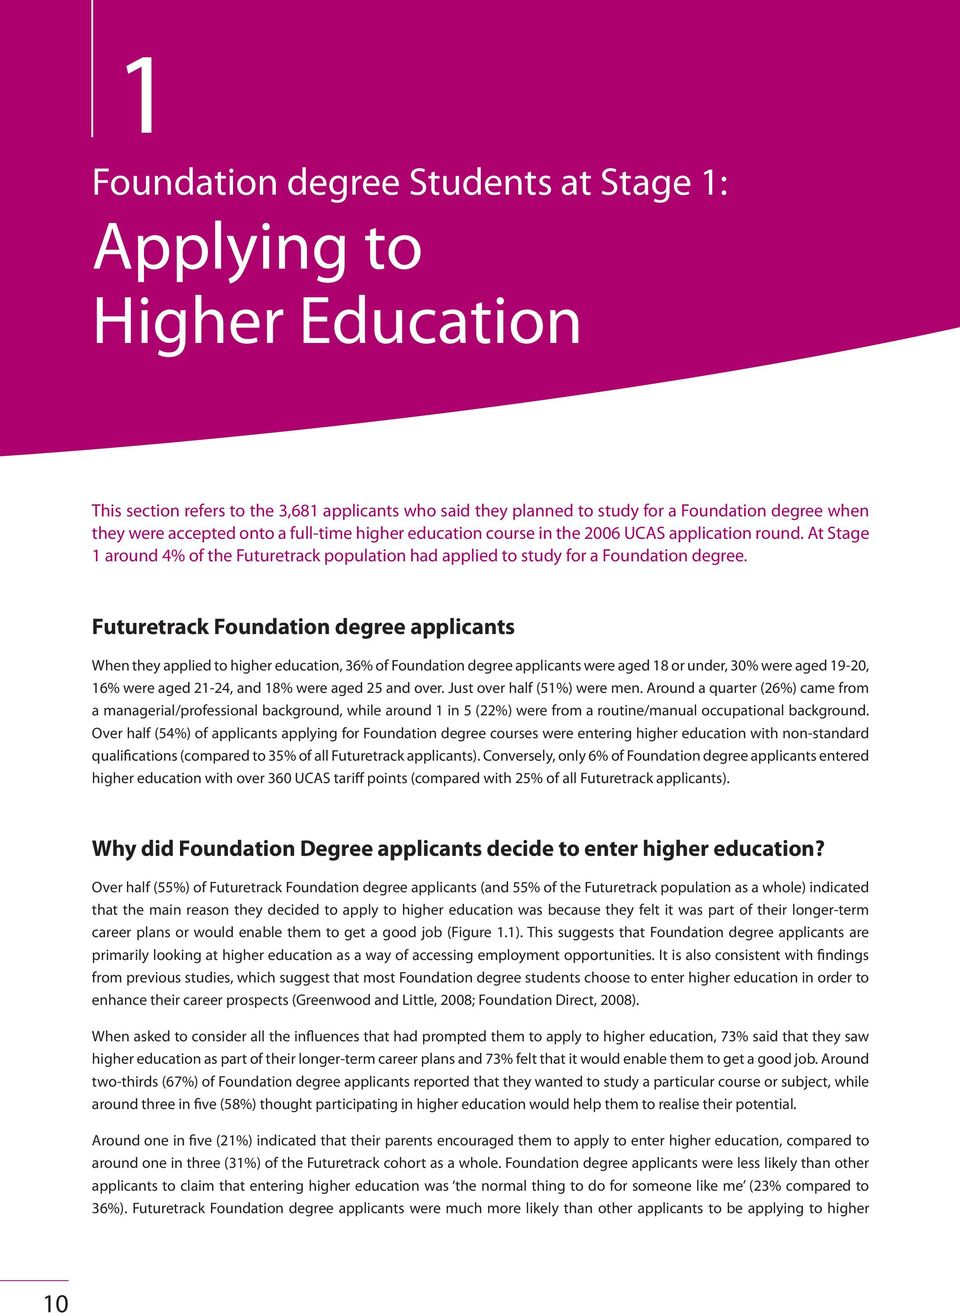 Futuretrack Foundation degree applicants When they applied to higher education, 36% of Foundation degree applicants were aged 18 or under, 30% were aged 19-20, 16% were aged 21-24, and 18% were aged